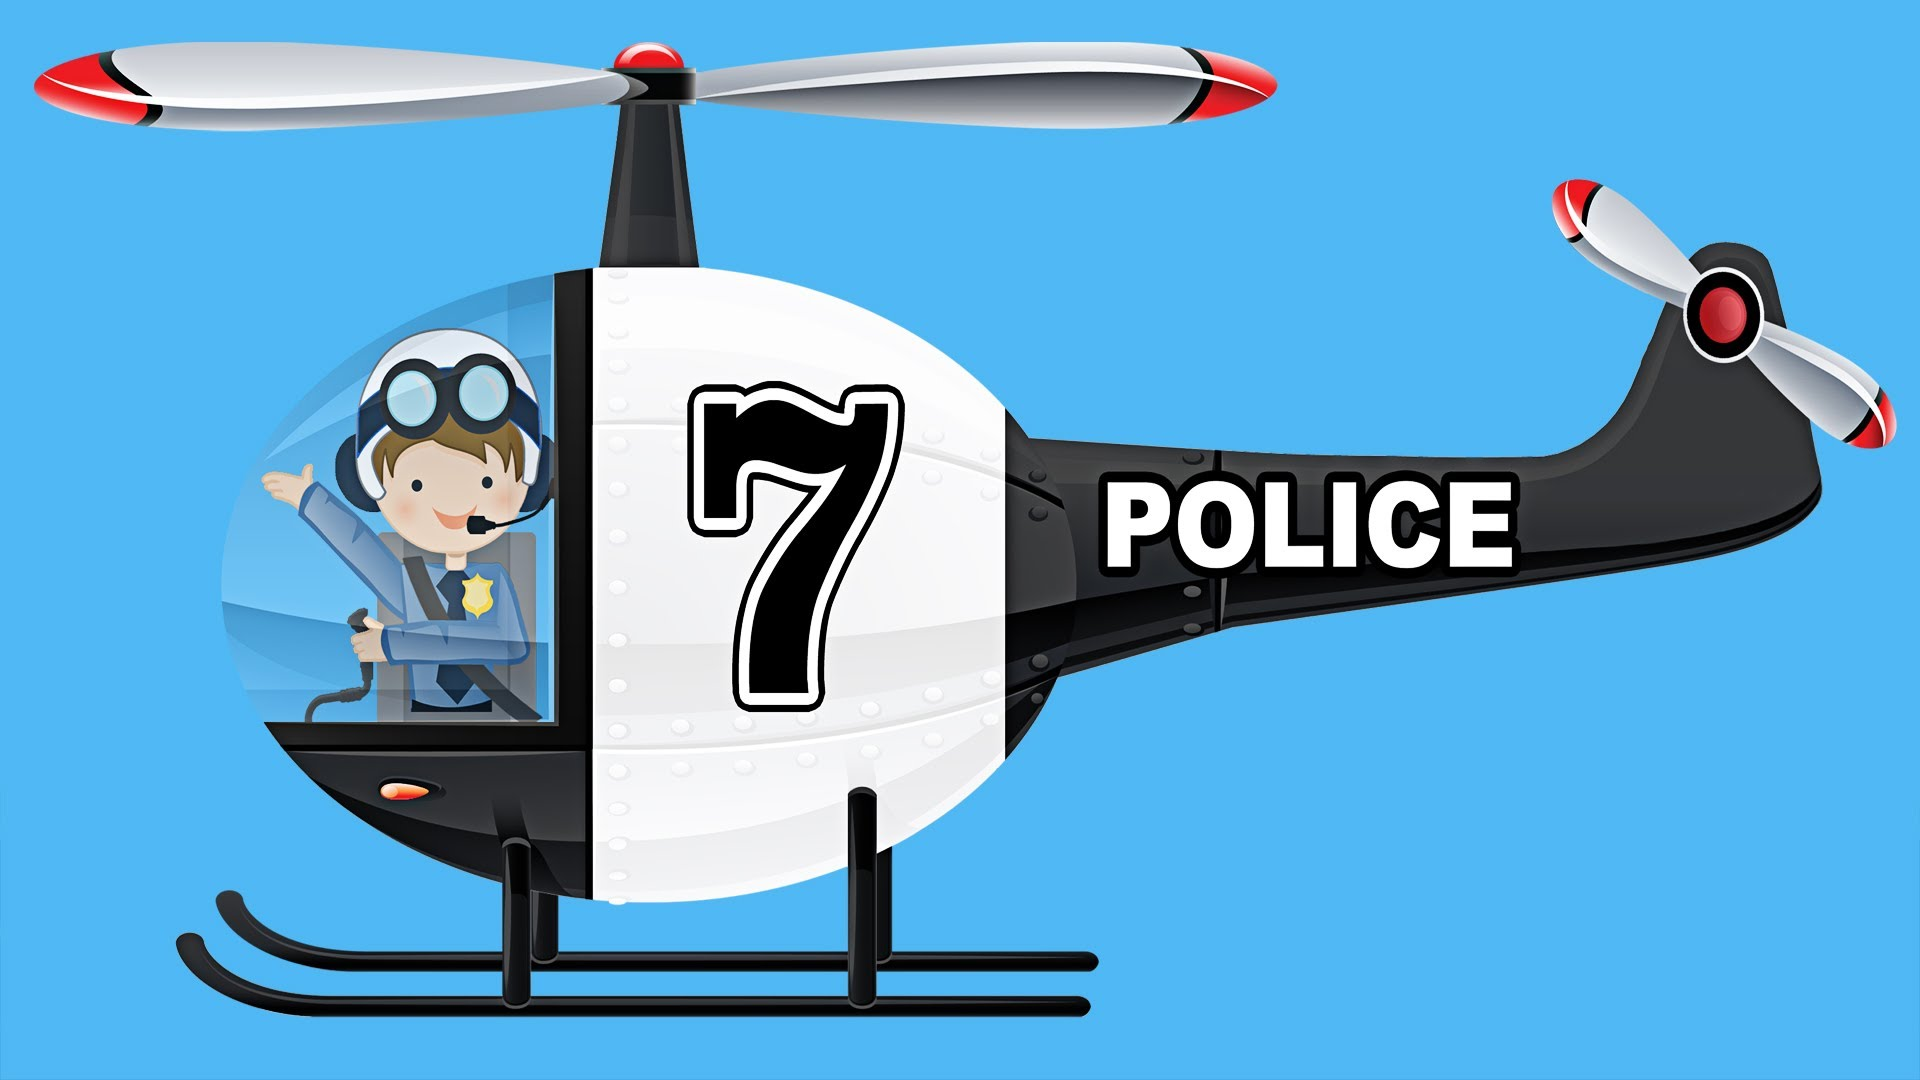 Police clipart police helicopter Police Helicopter Teaching Police